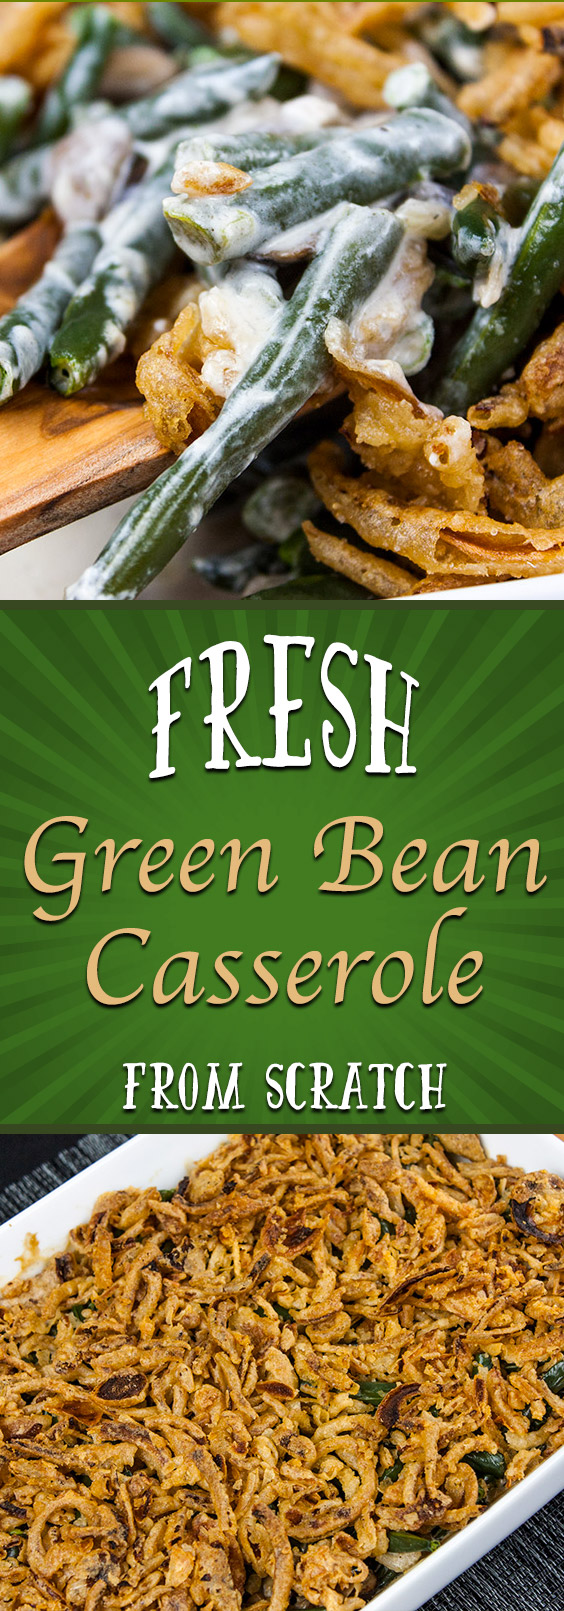 Green Bean Casserole From Scratch - A holiday classic made fresh. No canned beans or soups required. Creamy and full of traditional flavors!